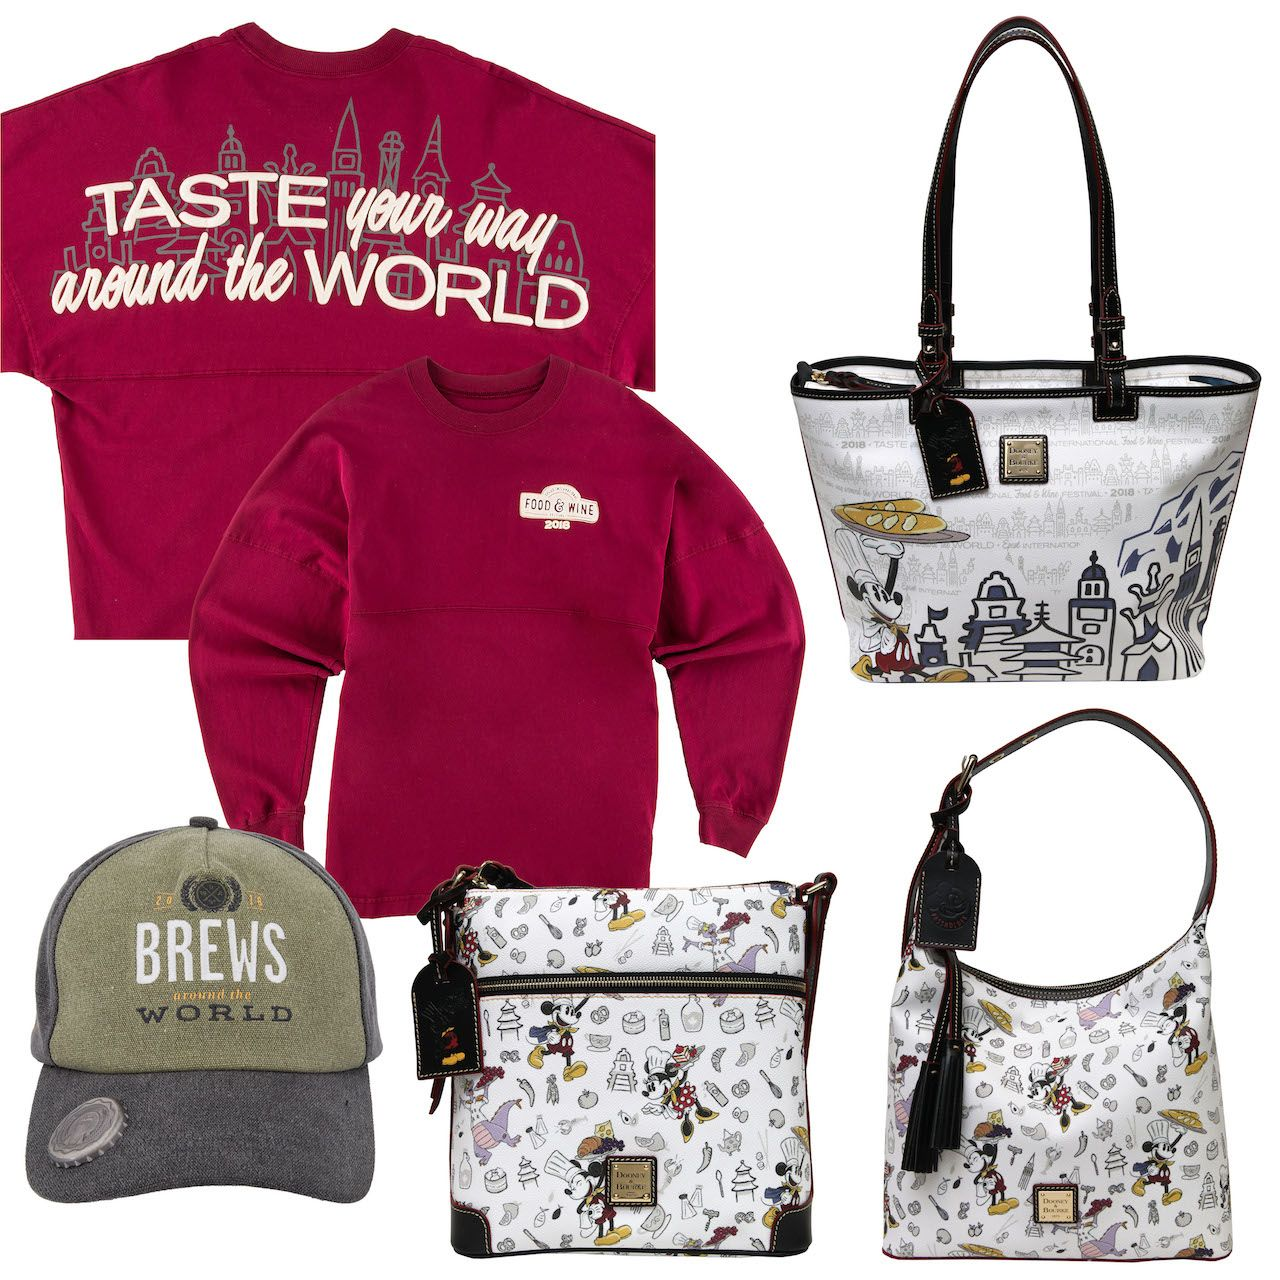 Commemorative Merchandise Mixes Function And Fun For The 2018 Epcot International Food Wine Festival Wine Festival Wine Recipes Disney World Merchandise